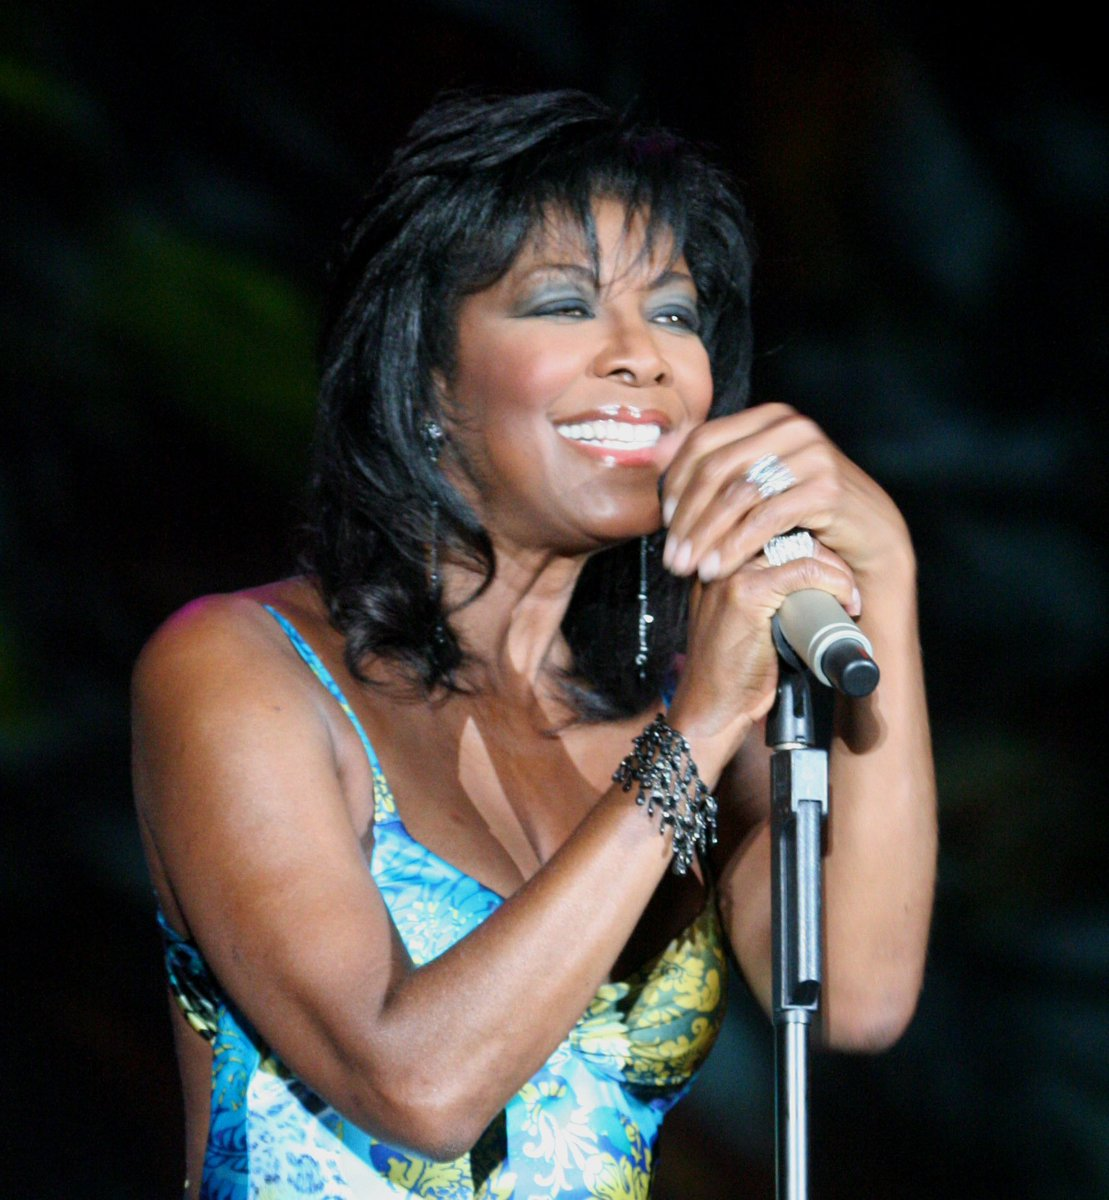 #NatalieCole, sister beloved & of substance and sound. May her soul rest in peace. #Inseperable https://t.co/zn7DArSMcG